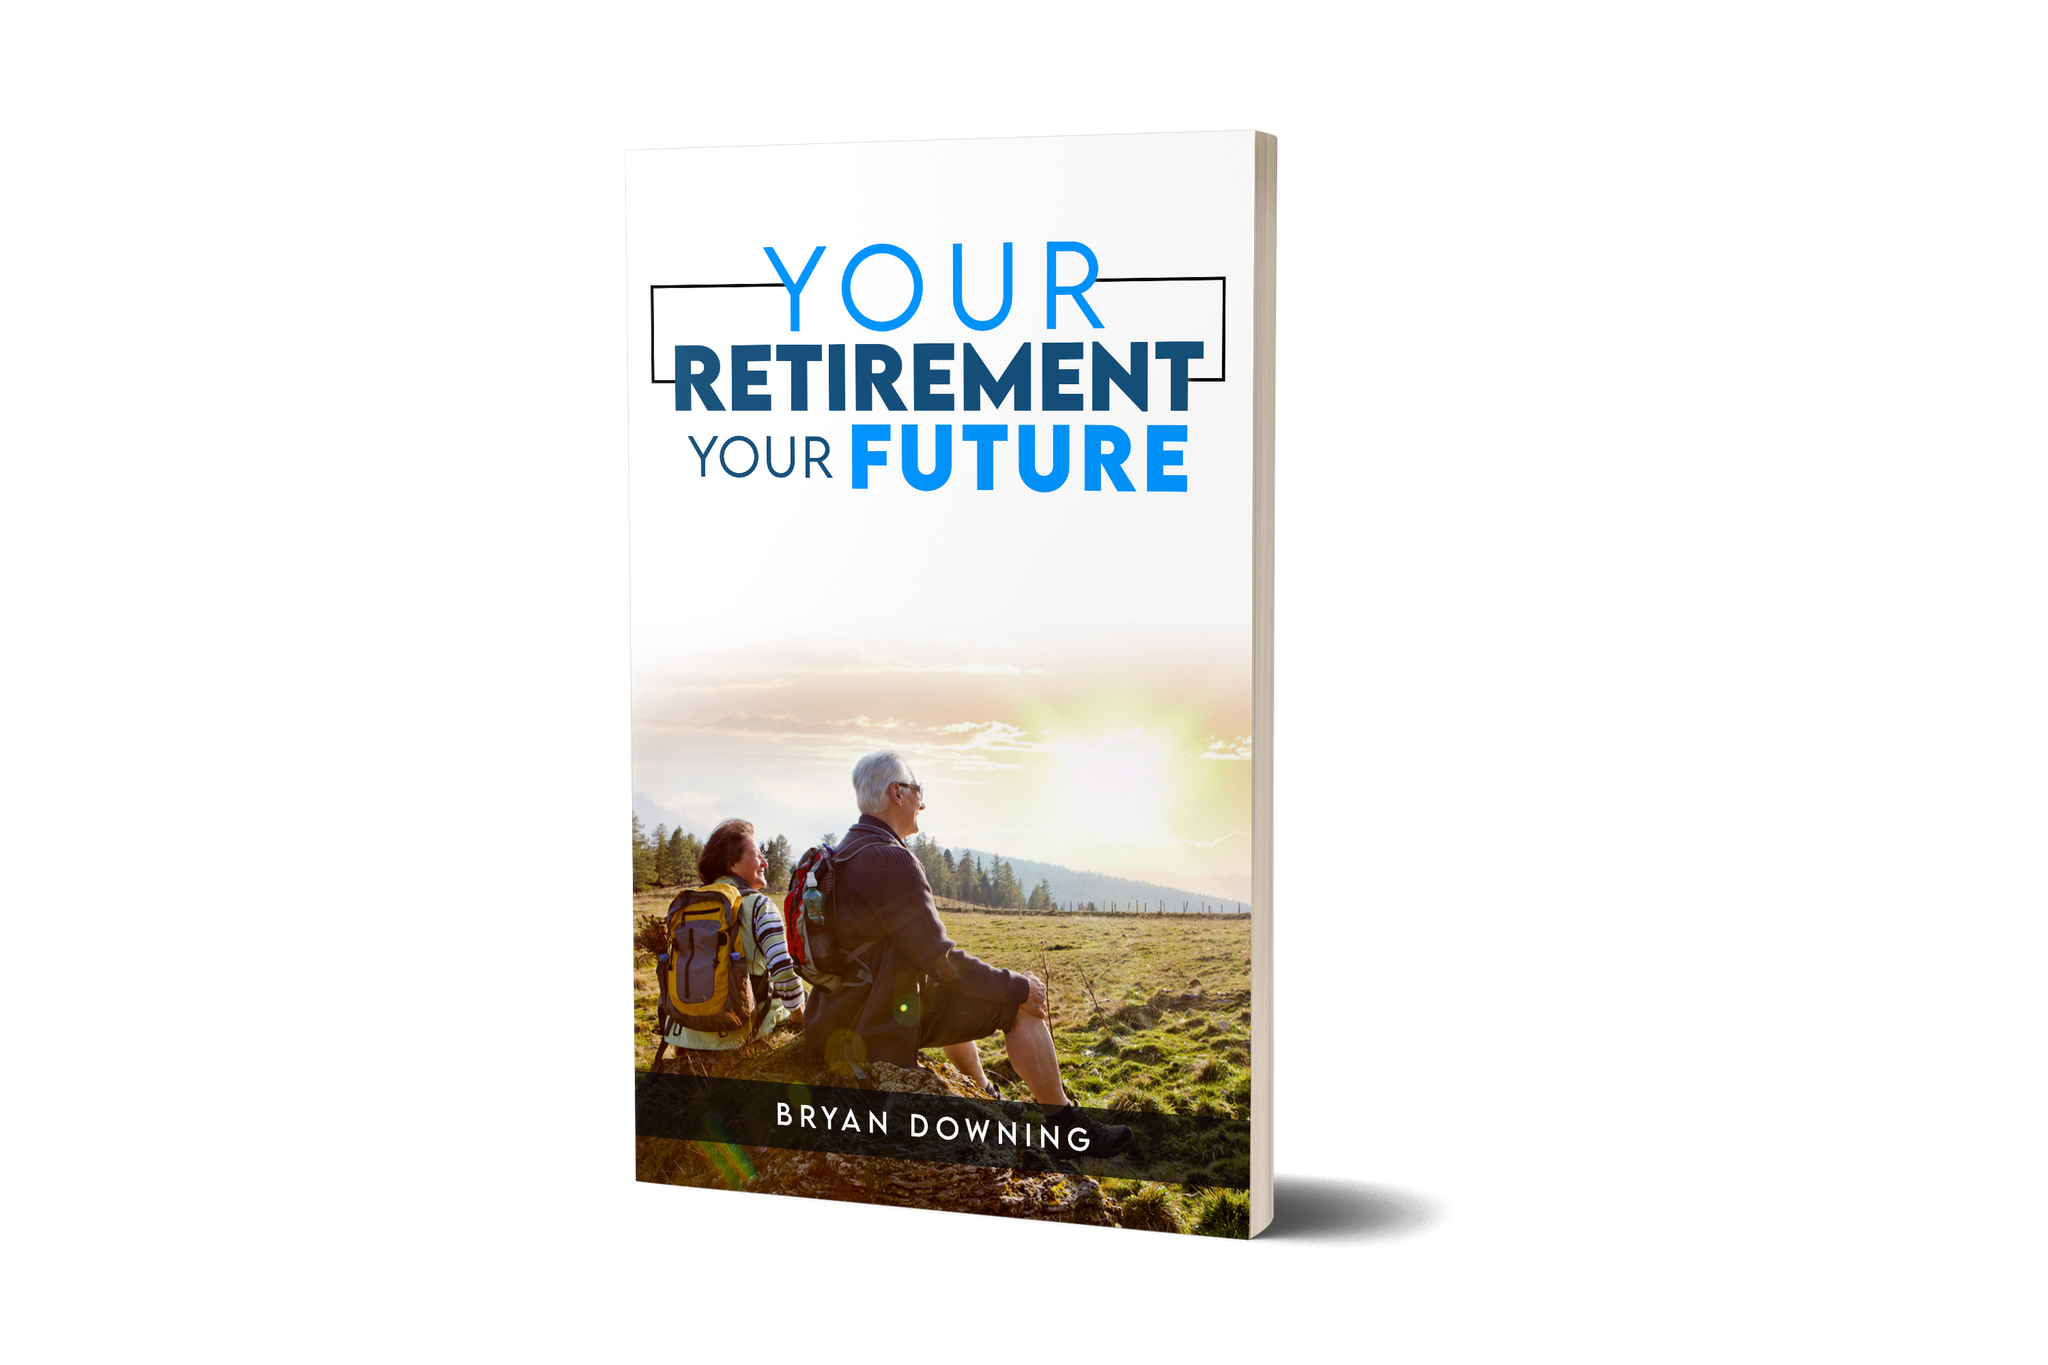 Your Future Your Retirement USB Key